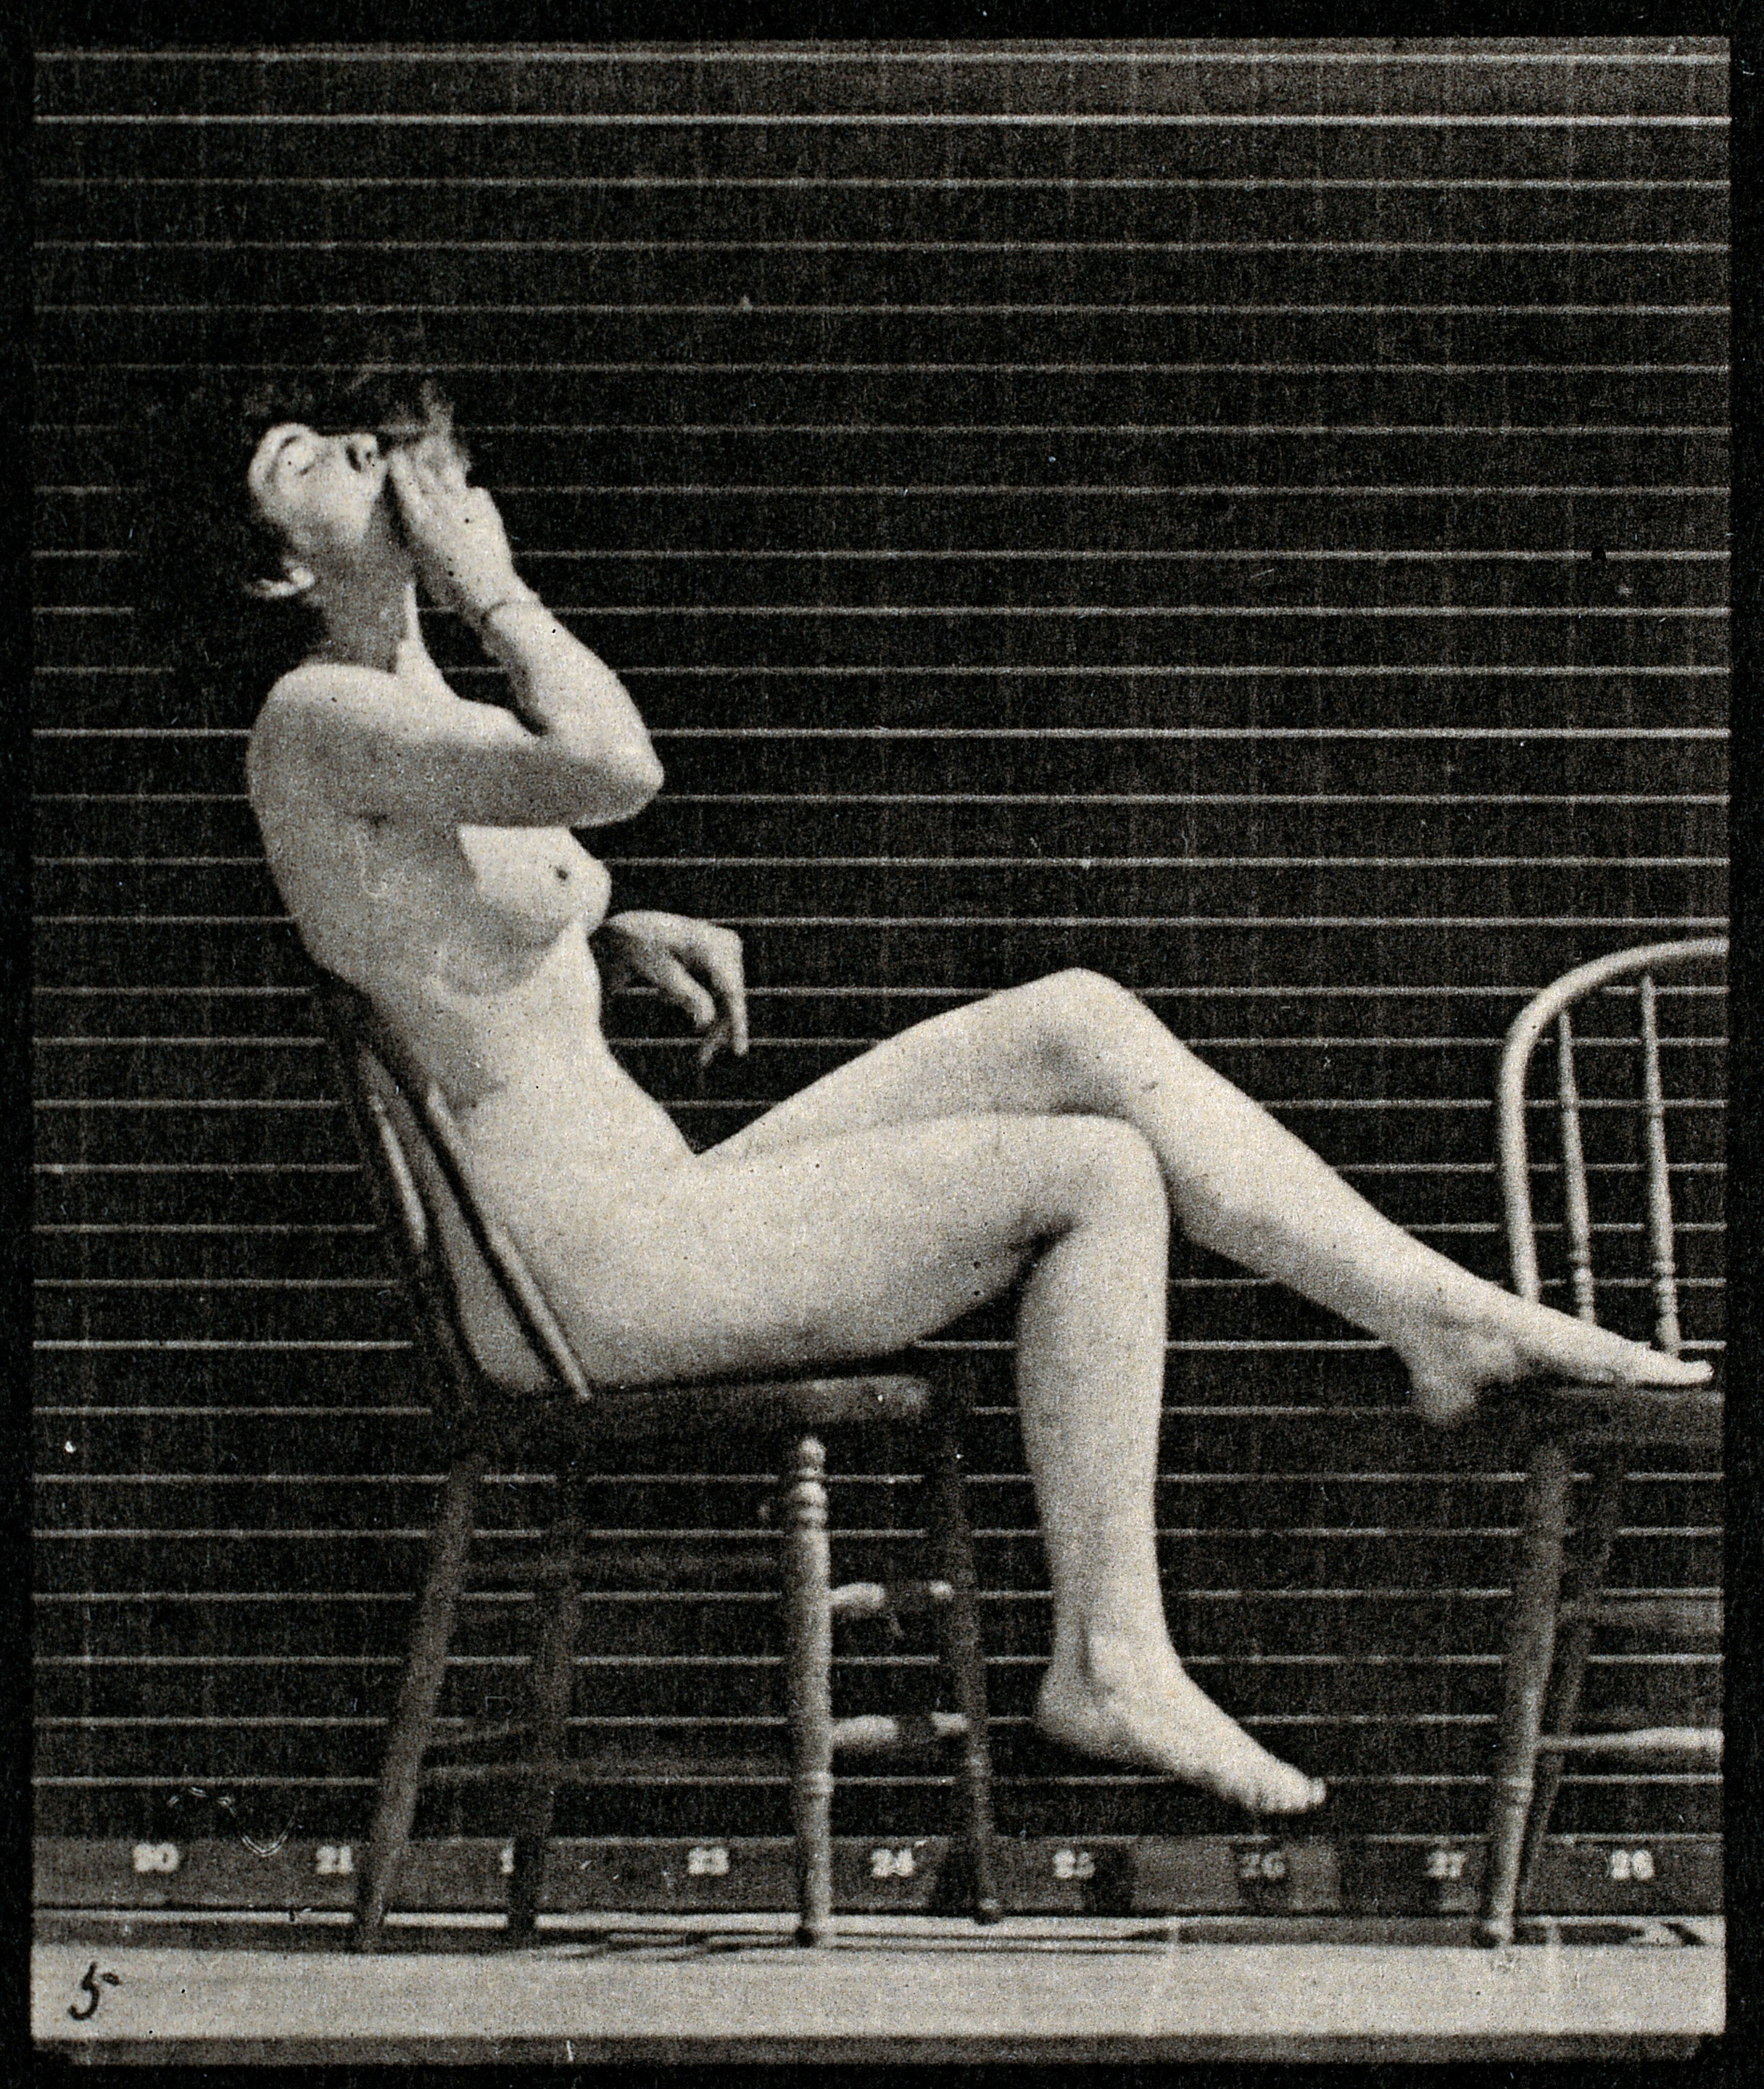 from Aden nude woman on a chair